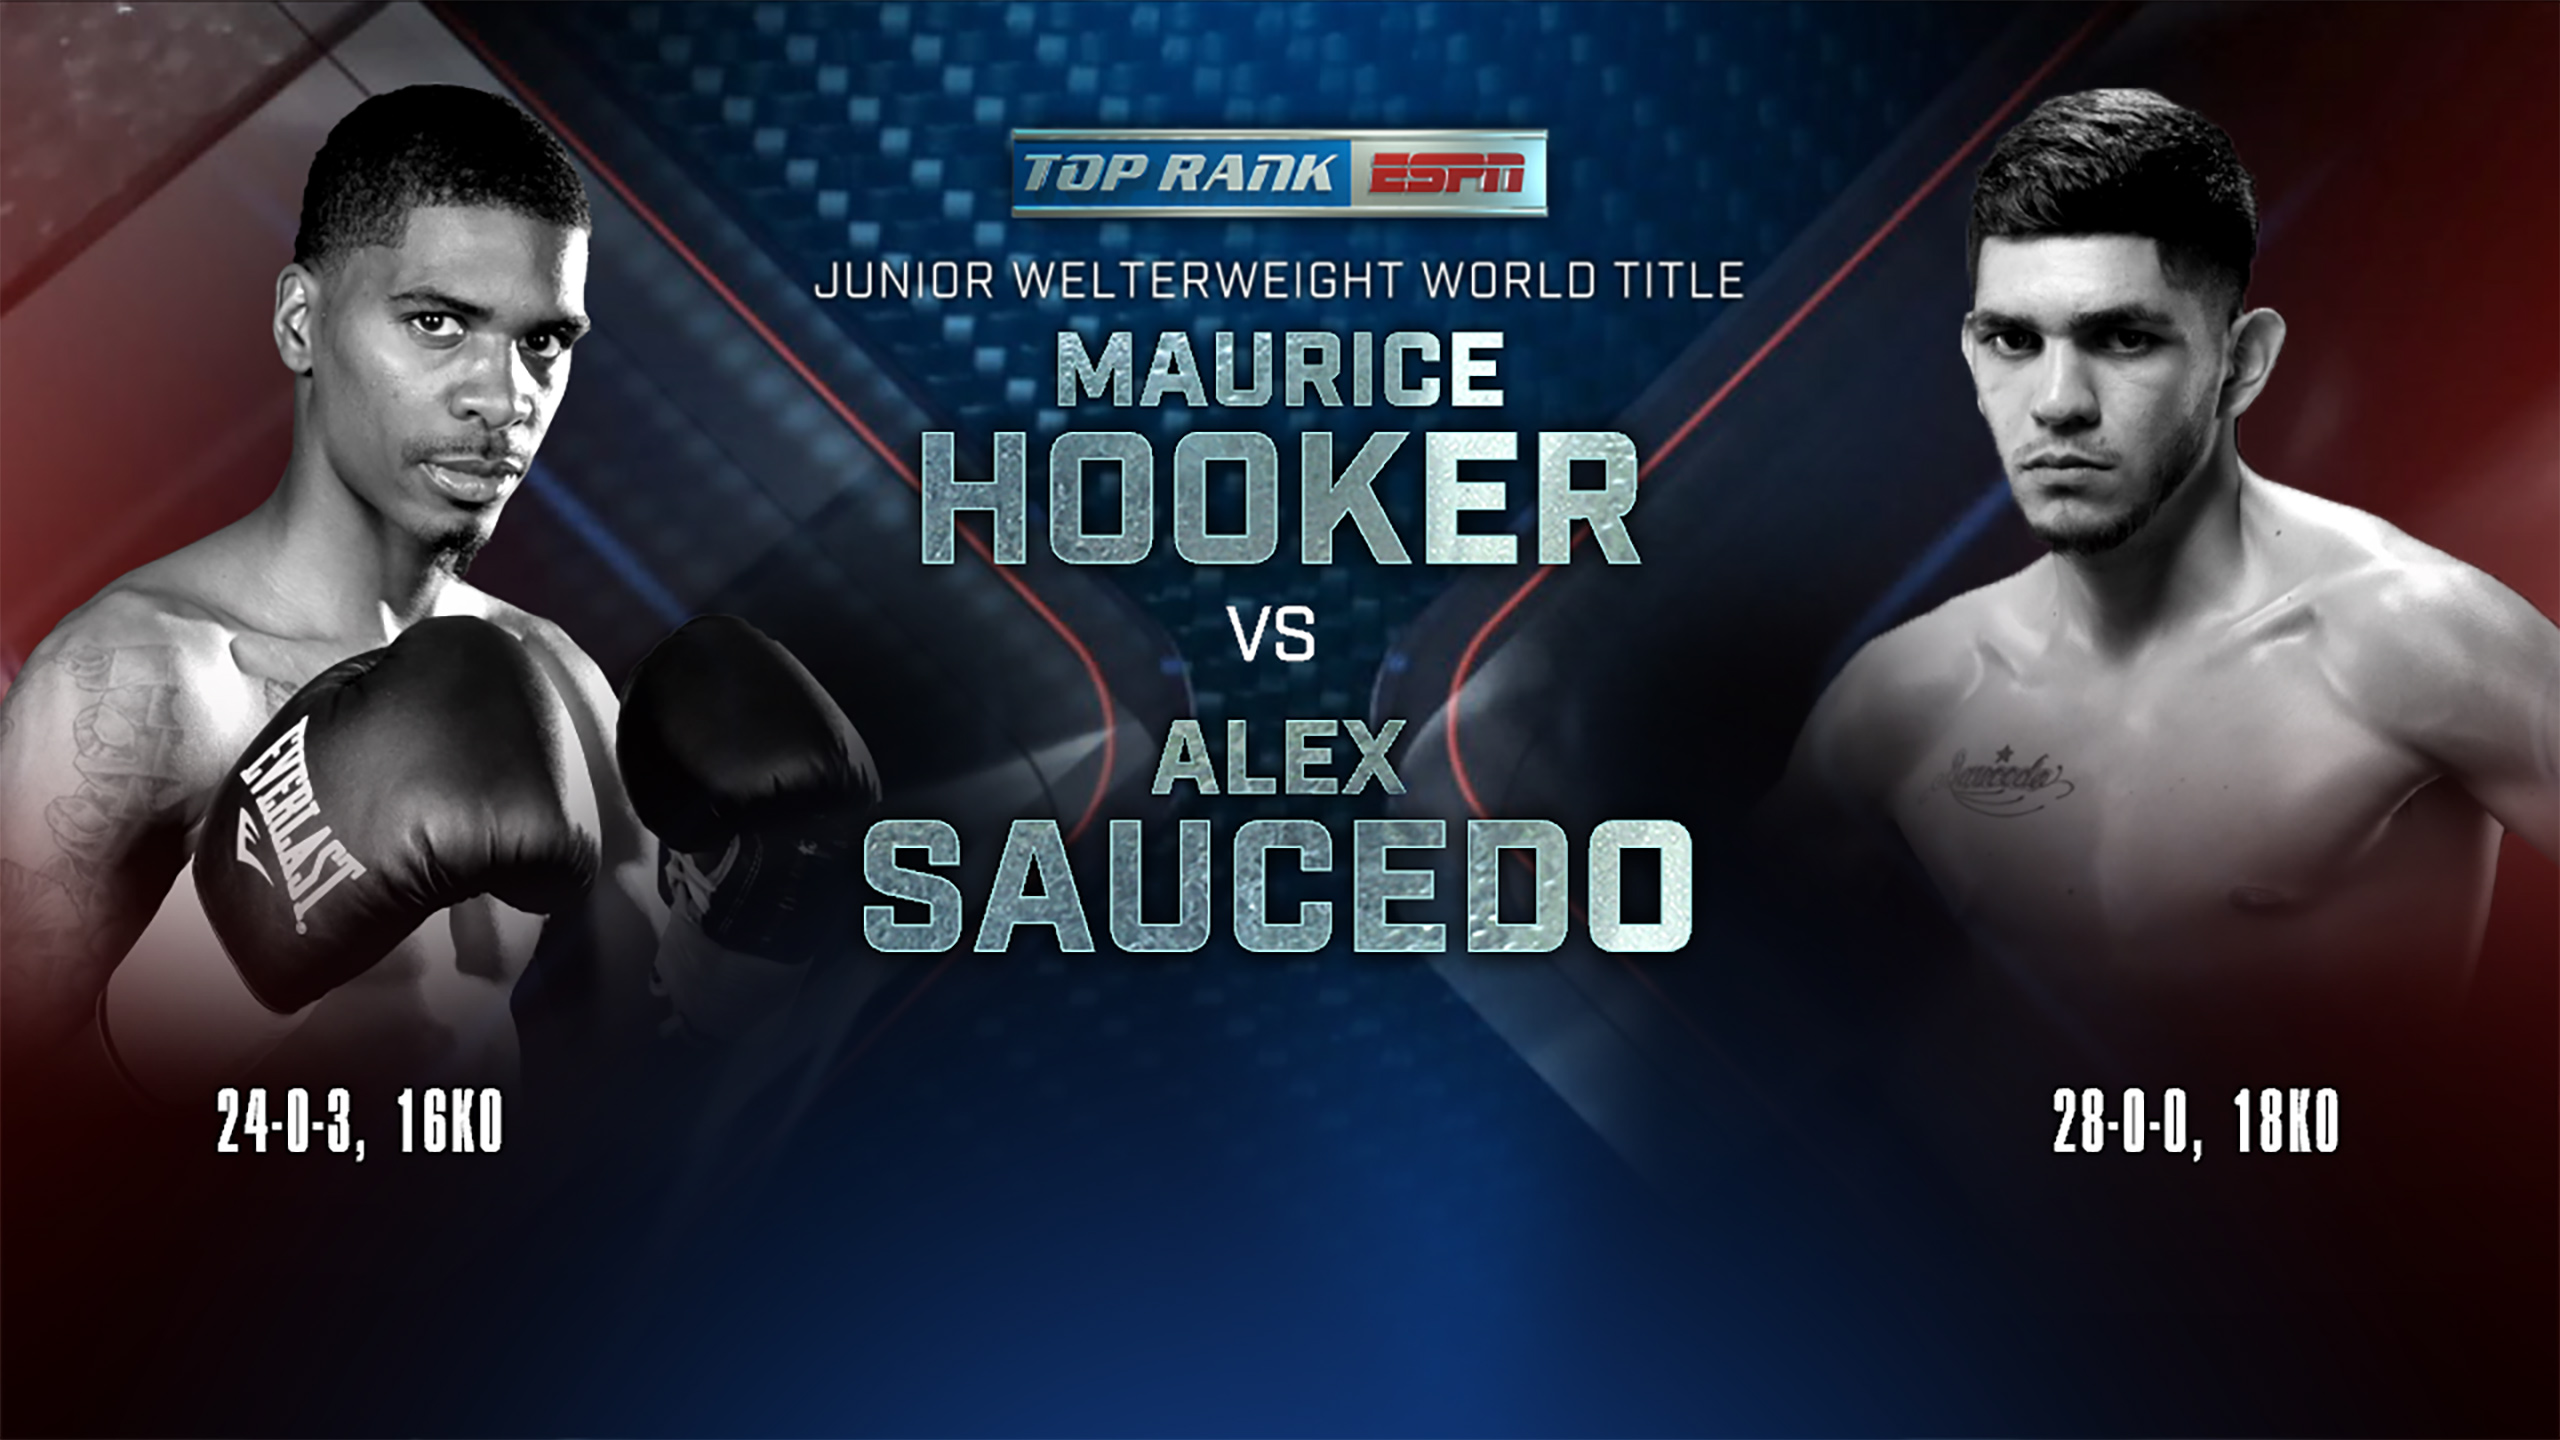 In Spanish - Maurice Hooker vs. Alex Saucedo